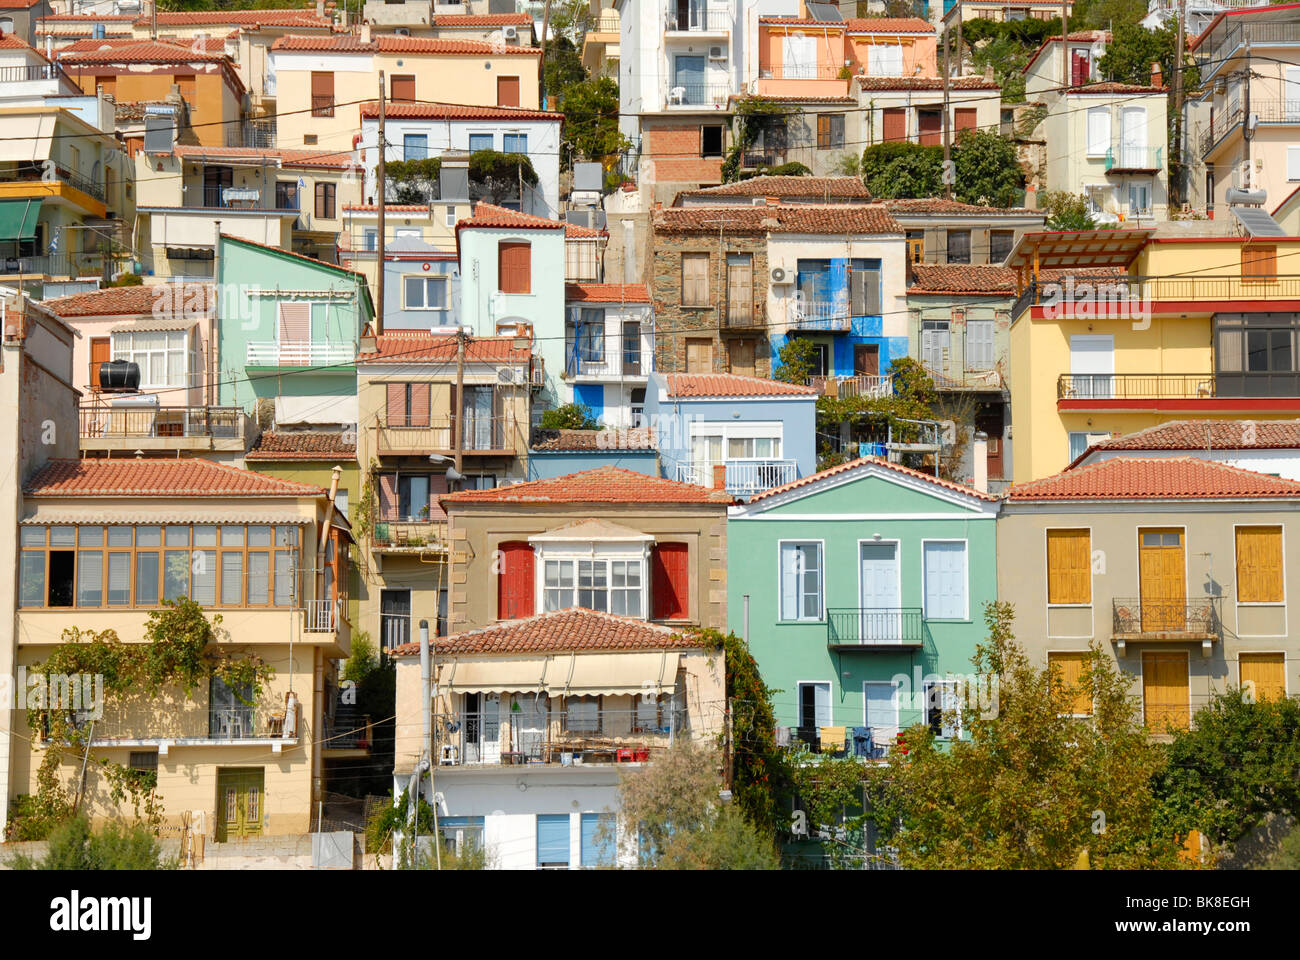 Town built on a hill, many-coloured houses, Plomari ...